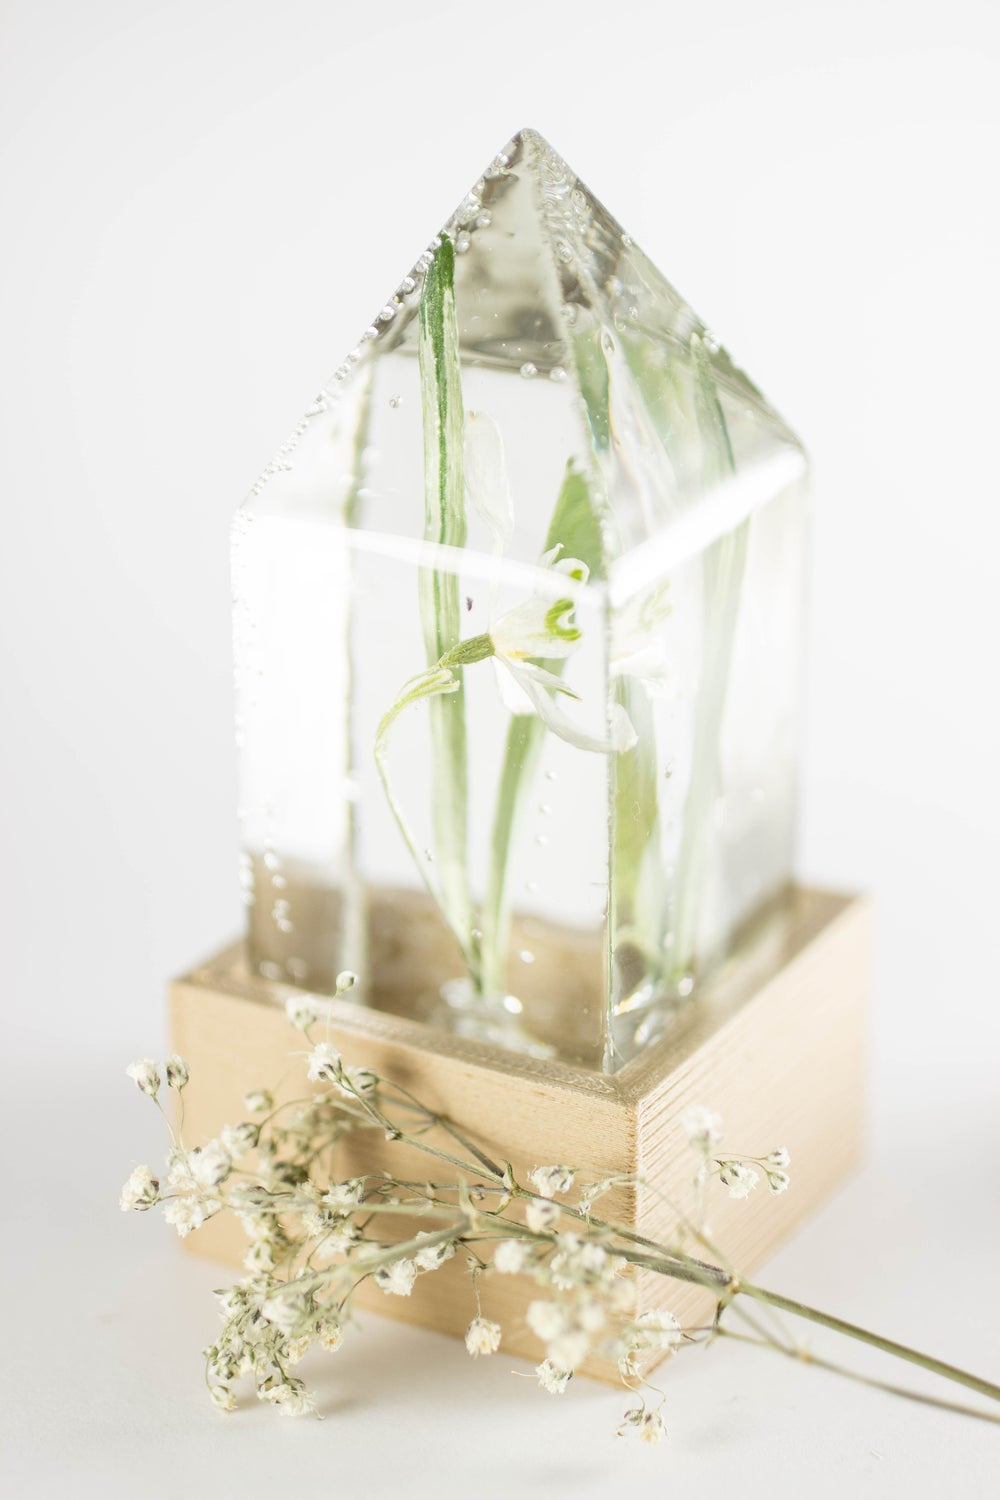 Image of Snowdrop (Galanthus nivalis) - Floral Desk Light #2